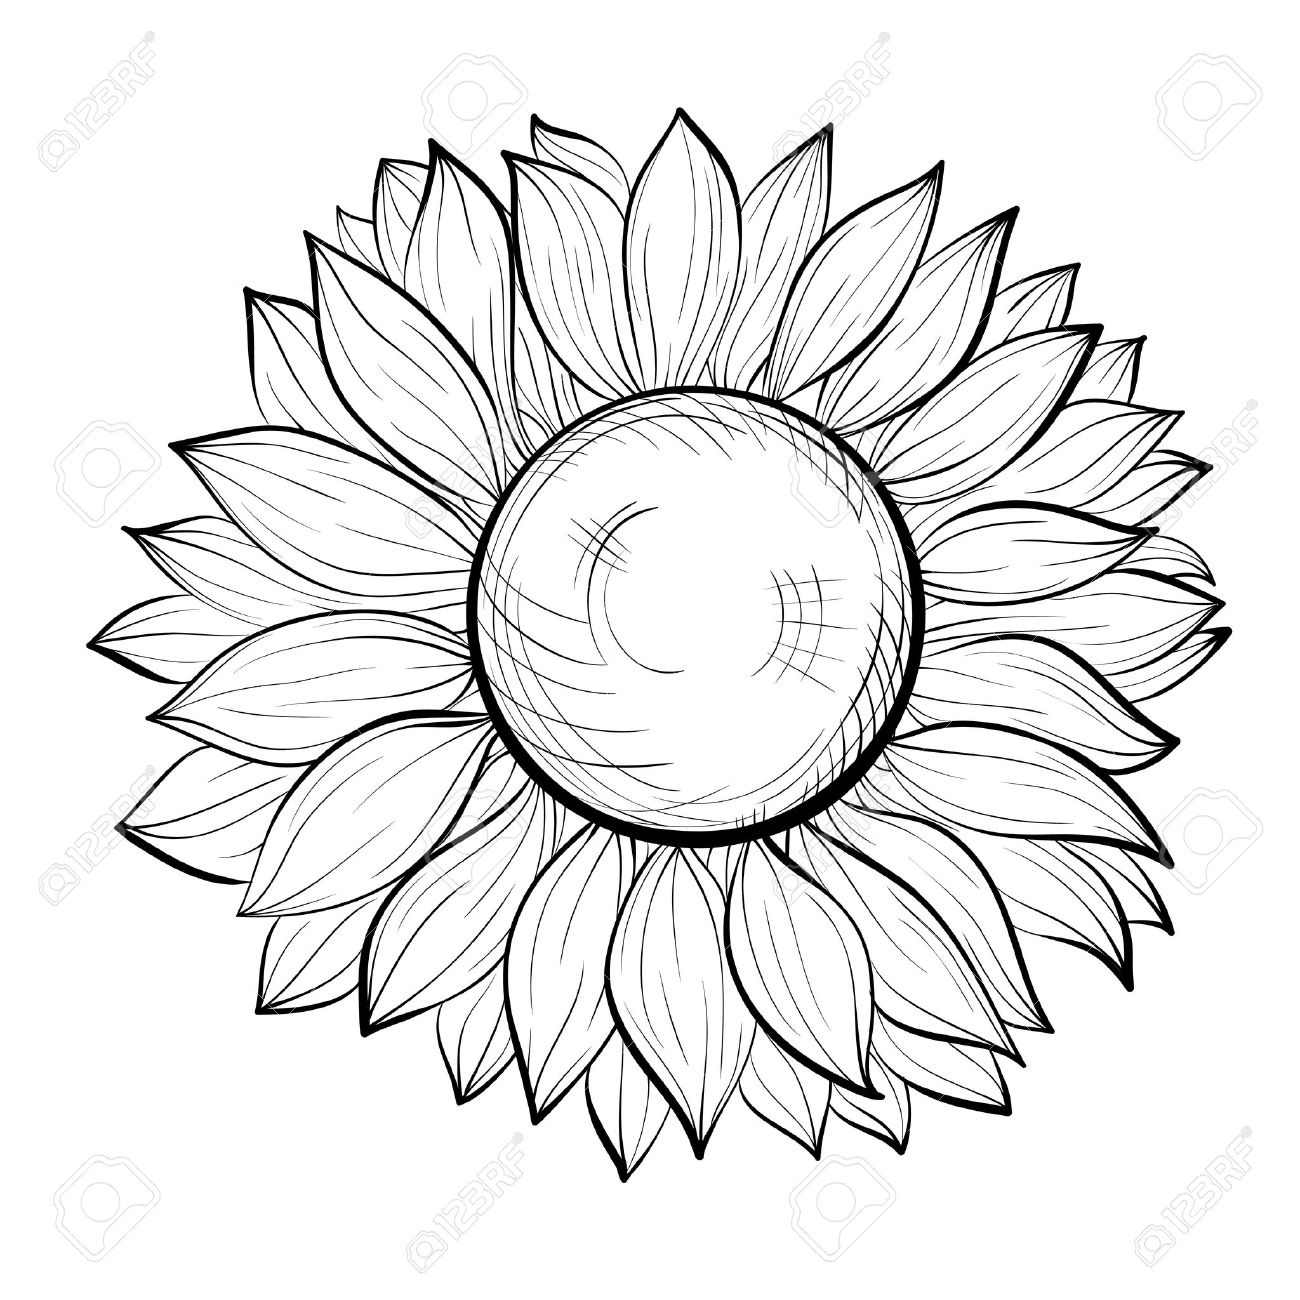 1300x1300 Black And White Sunflower Drawing Beautiful Black And White